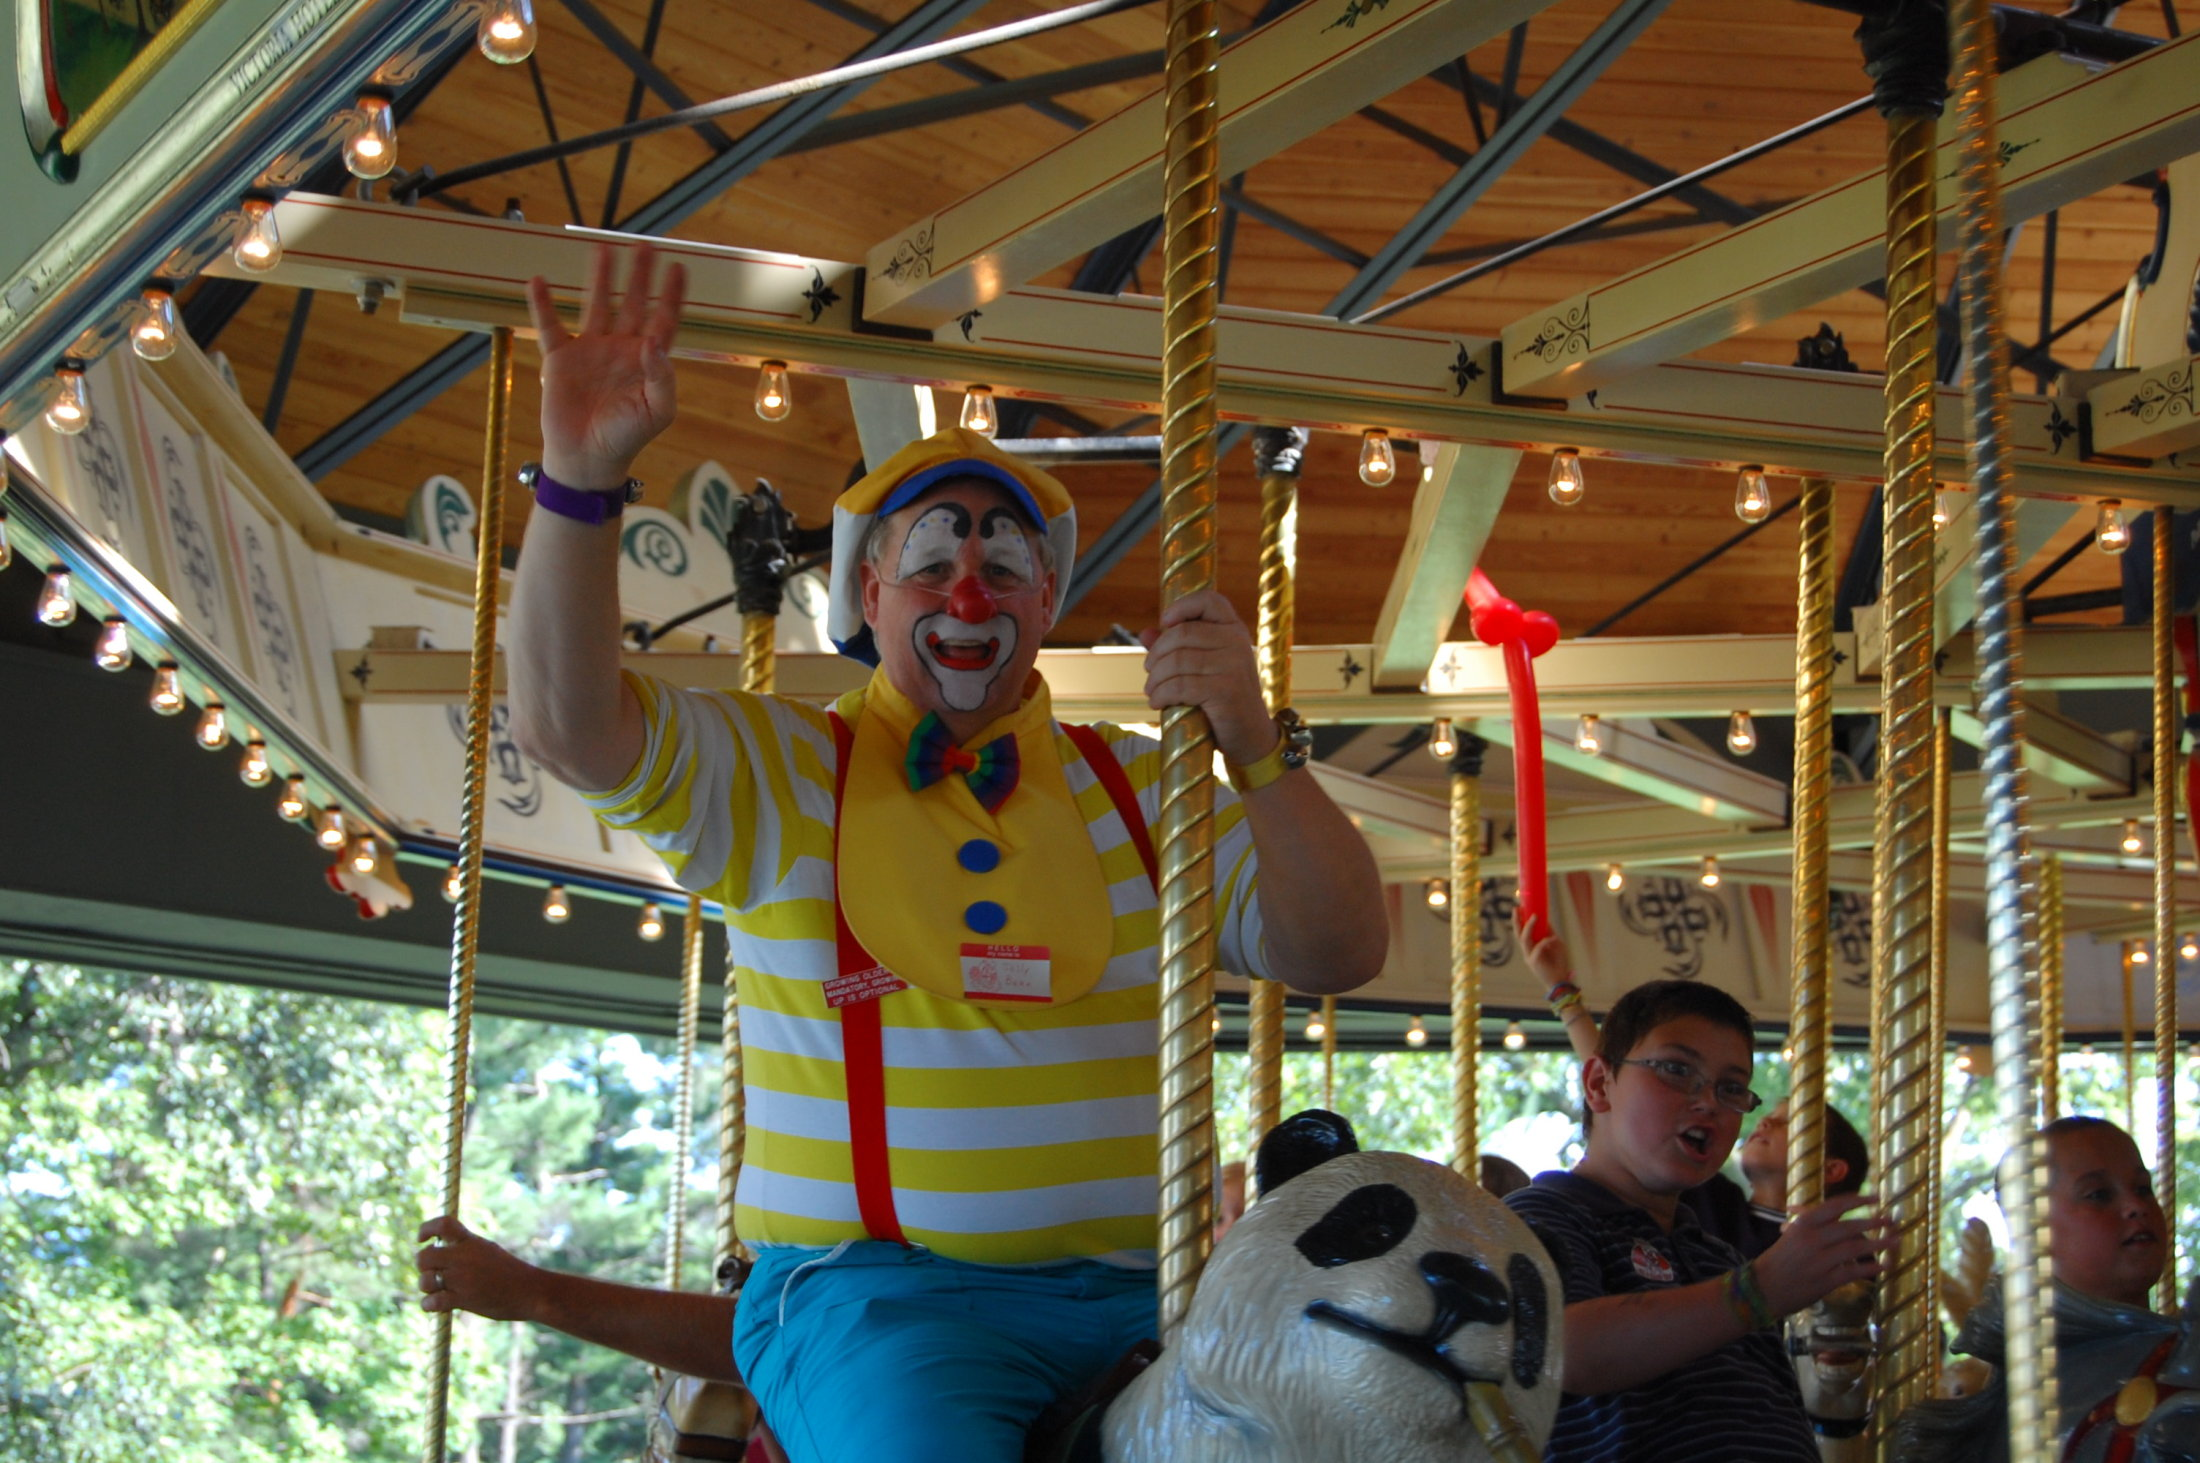 Clowns At The Carousel 2010 (030)